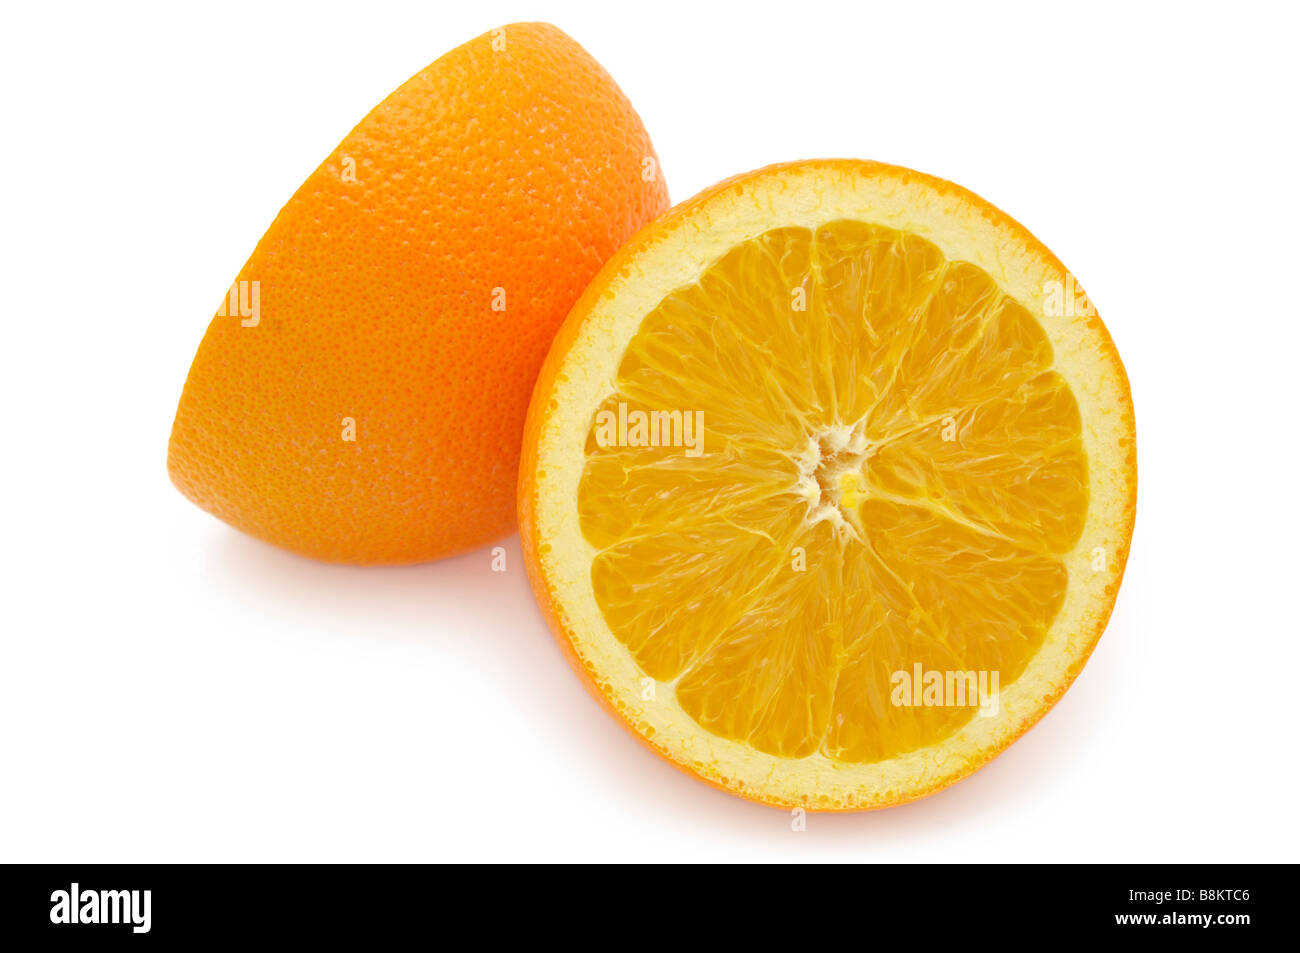 Two Halves of an Orange - Stock Image